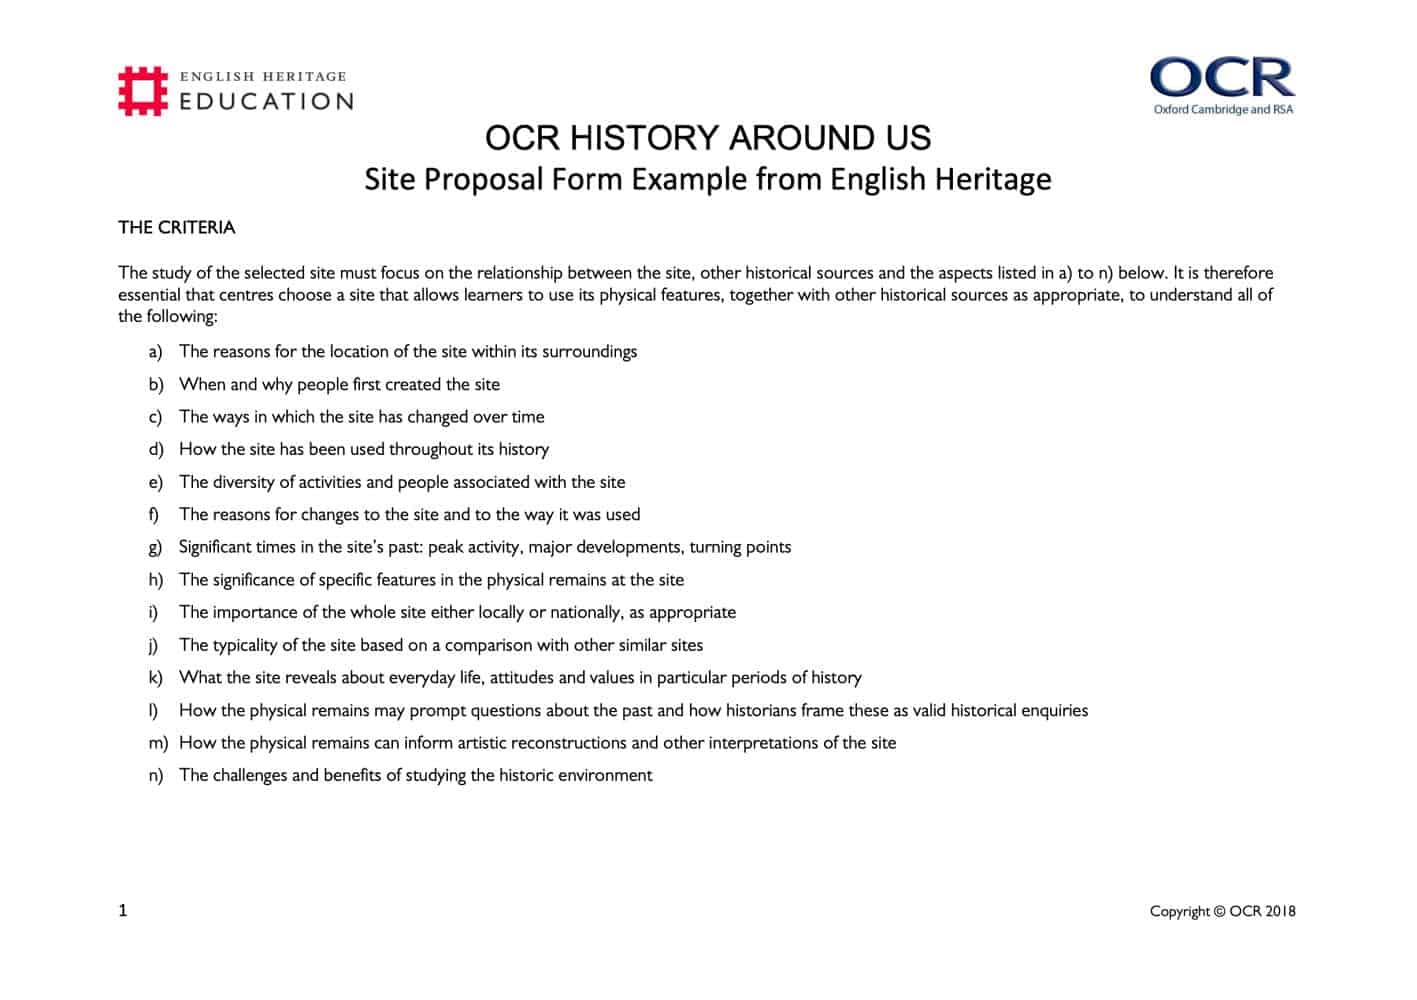 Bank of England Museum's Pounds and Pence Educational Video Resource Image